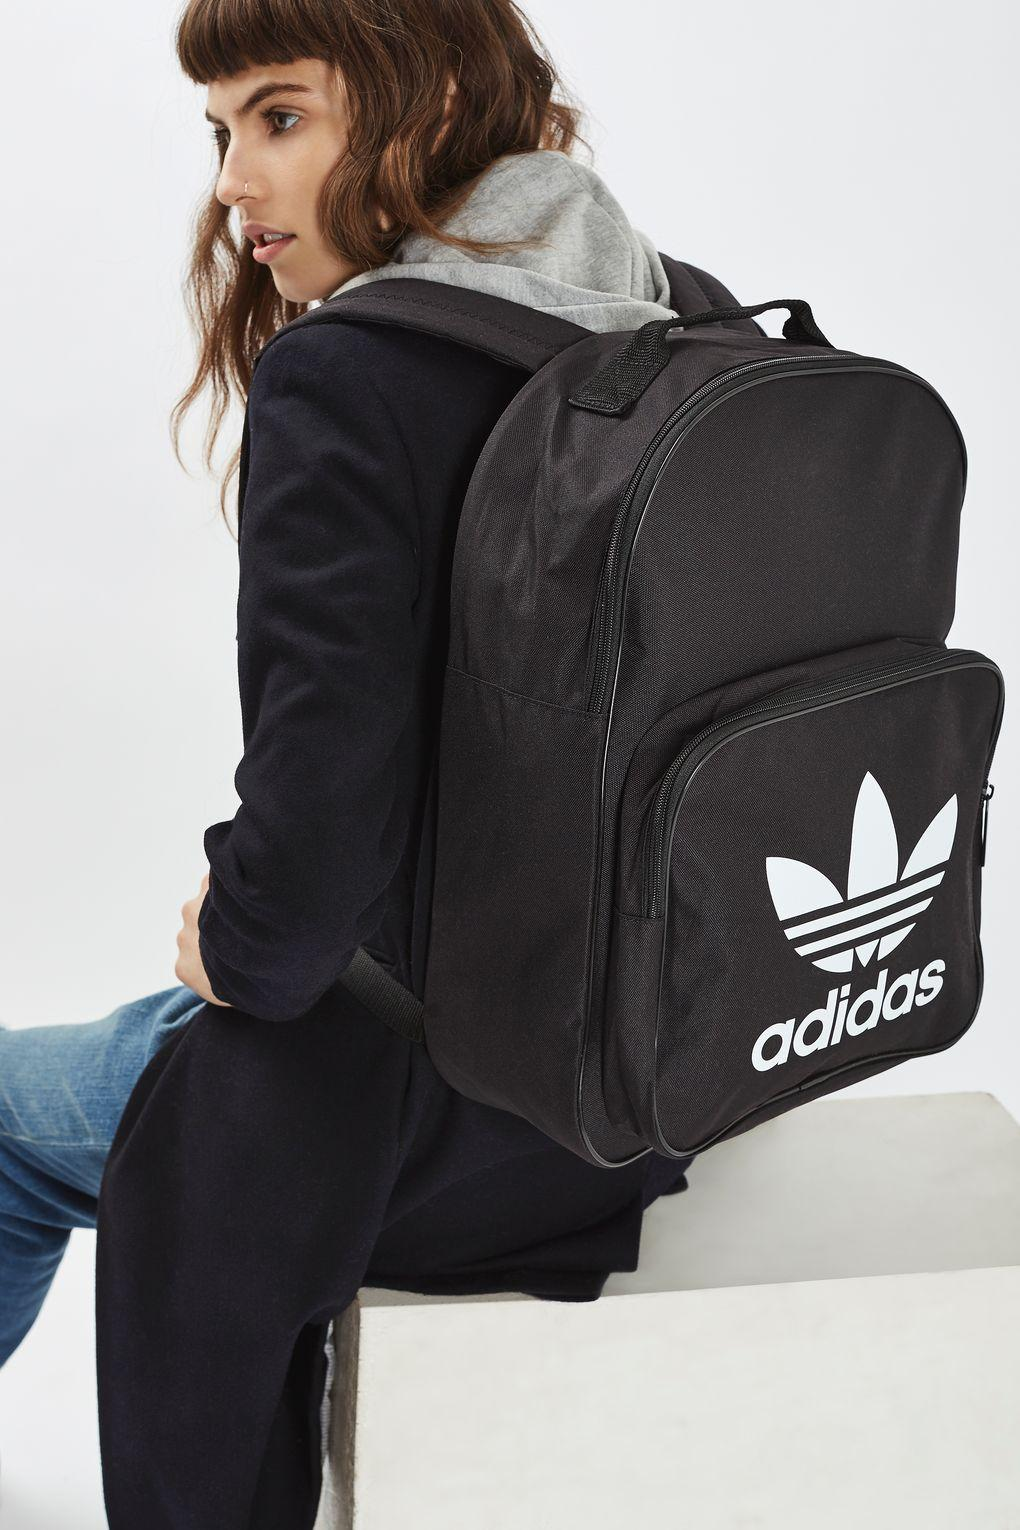 6766affc379d Lyst - adidas Trefoil Backpack By Adidas Originals in Black